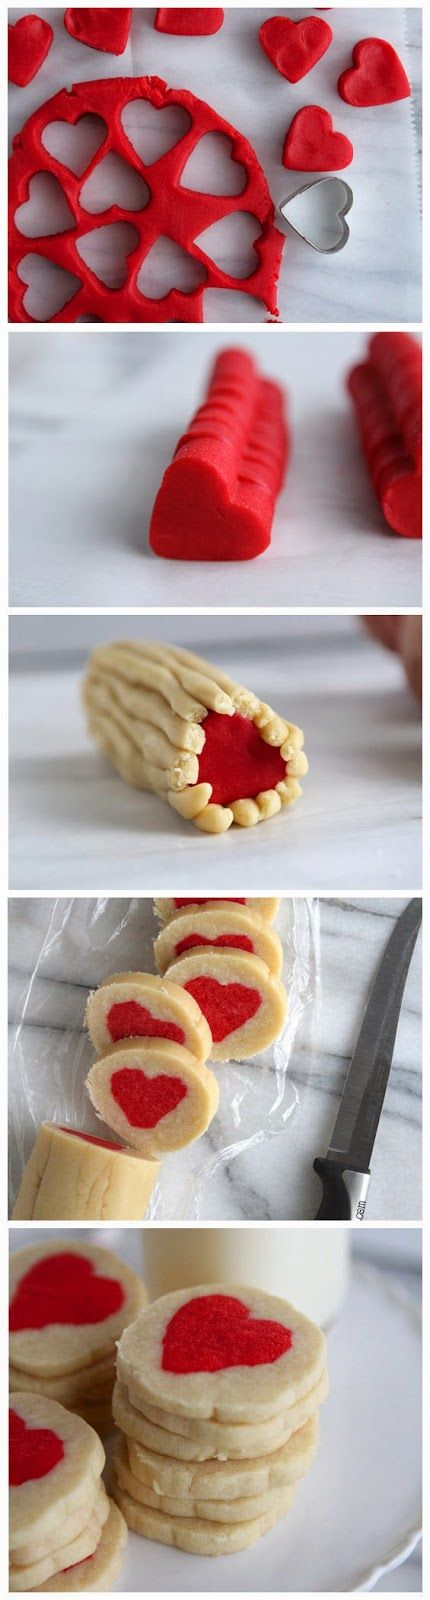 Slice n' Bake Valentine Heart Cookies - kiss recipe: